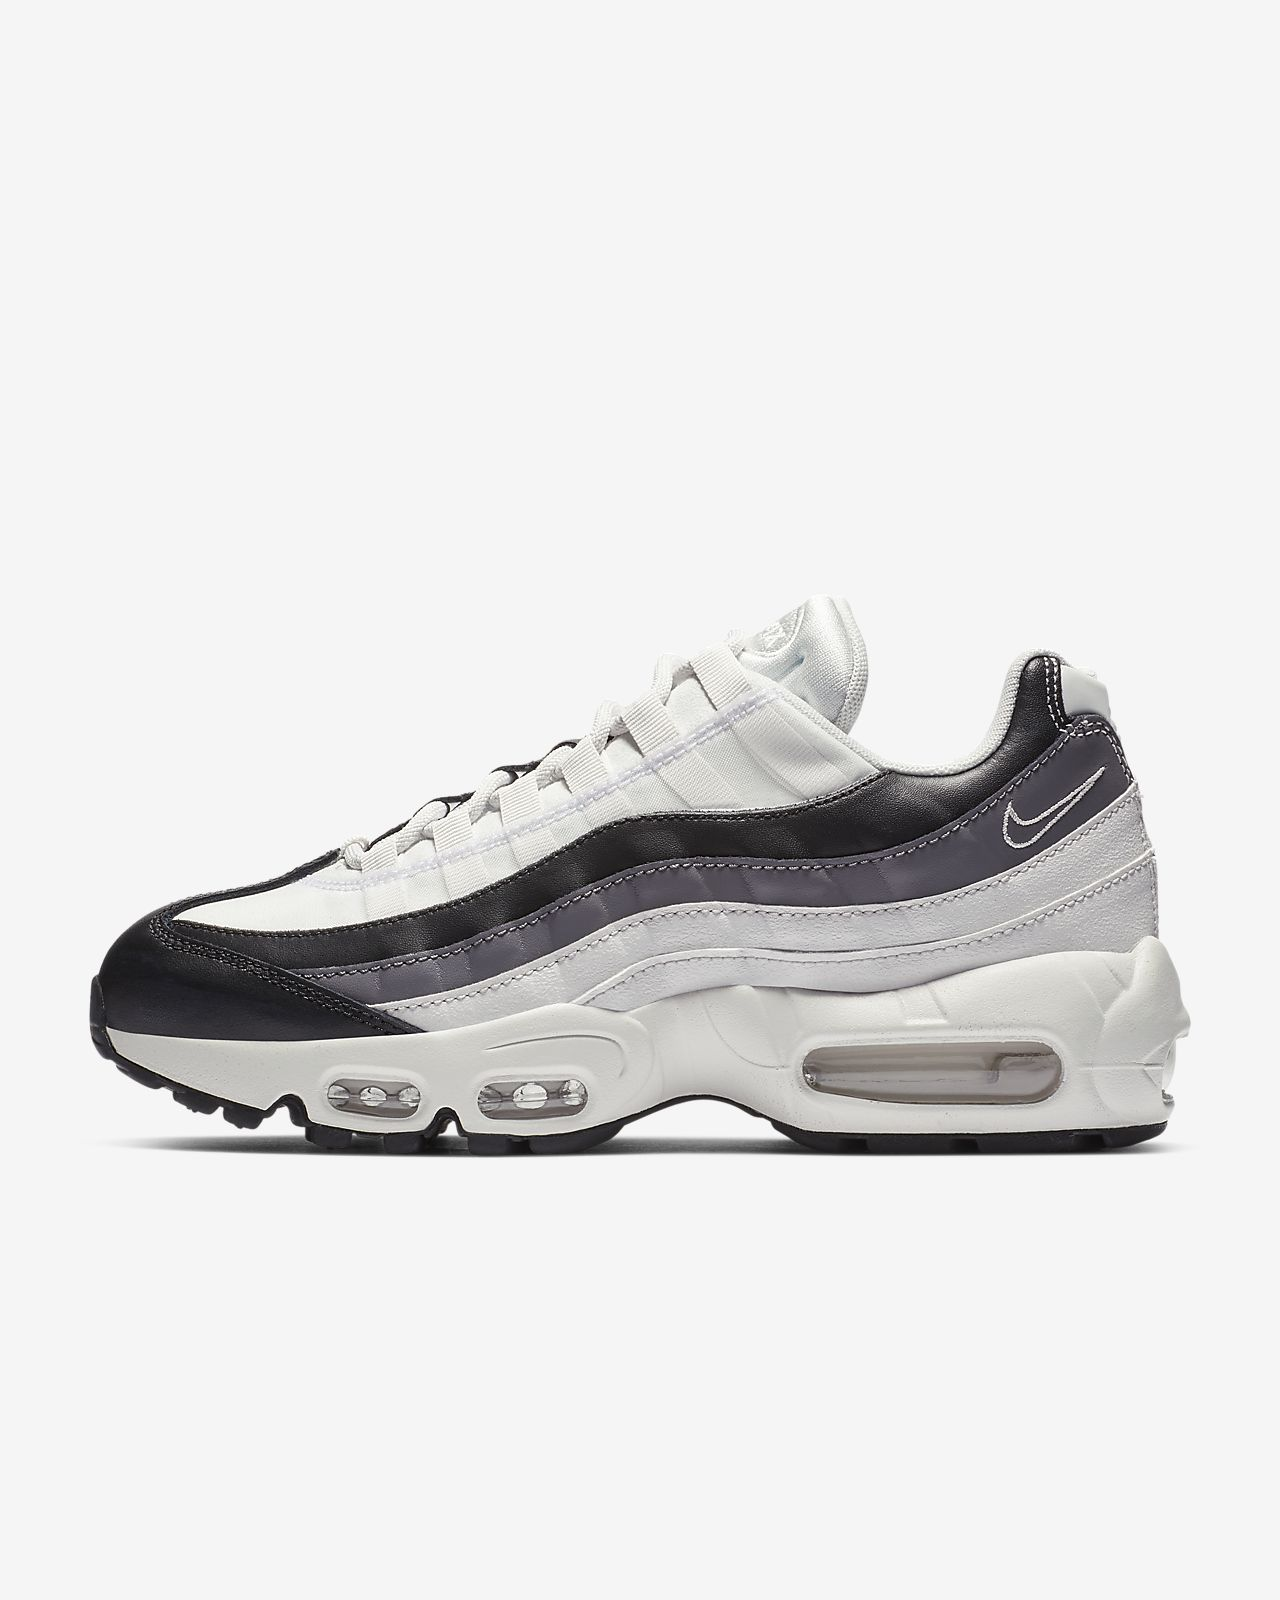 separation shoes 22c0a 8d70b Women s Shoe. Nike Air Max 95